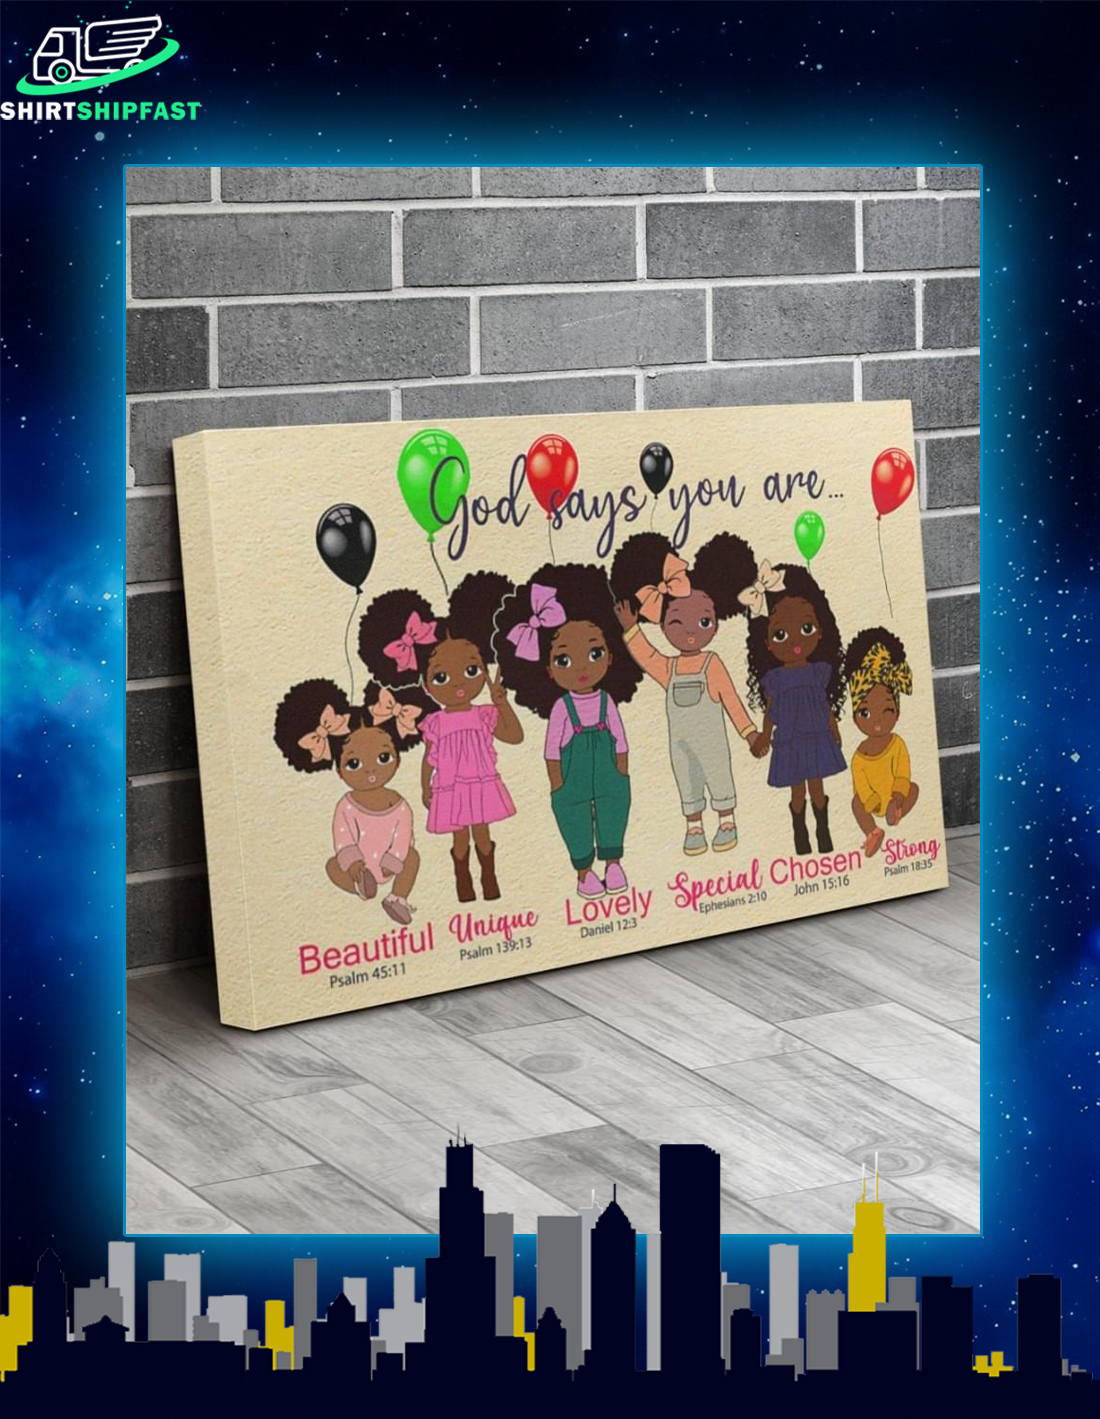 Black girl god says you are canvas prints - Picture 1